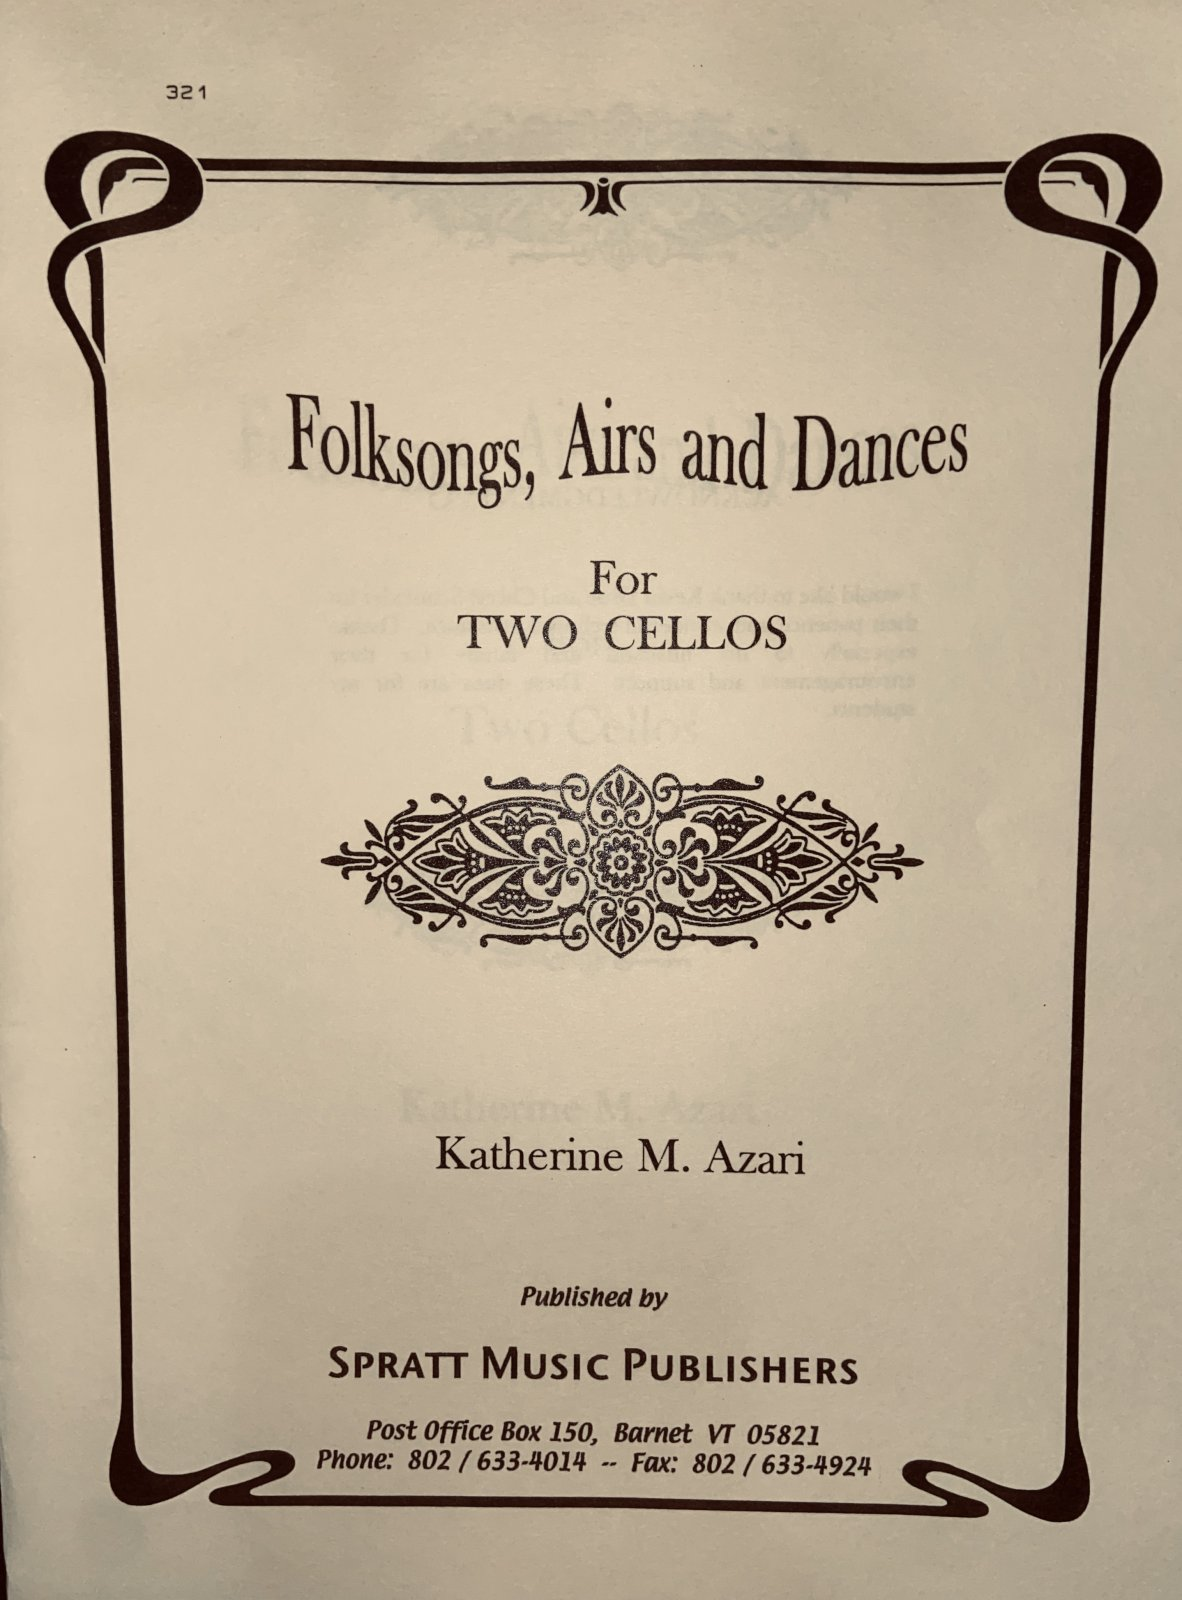 Folksongs, Airs and Dances for Twe Cellos - Azari